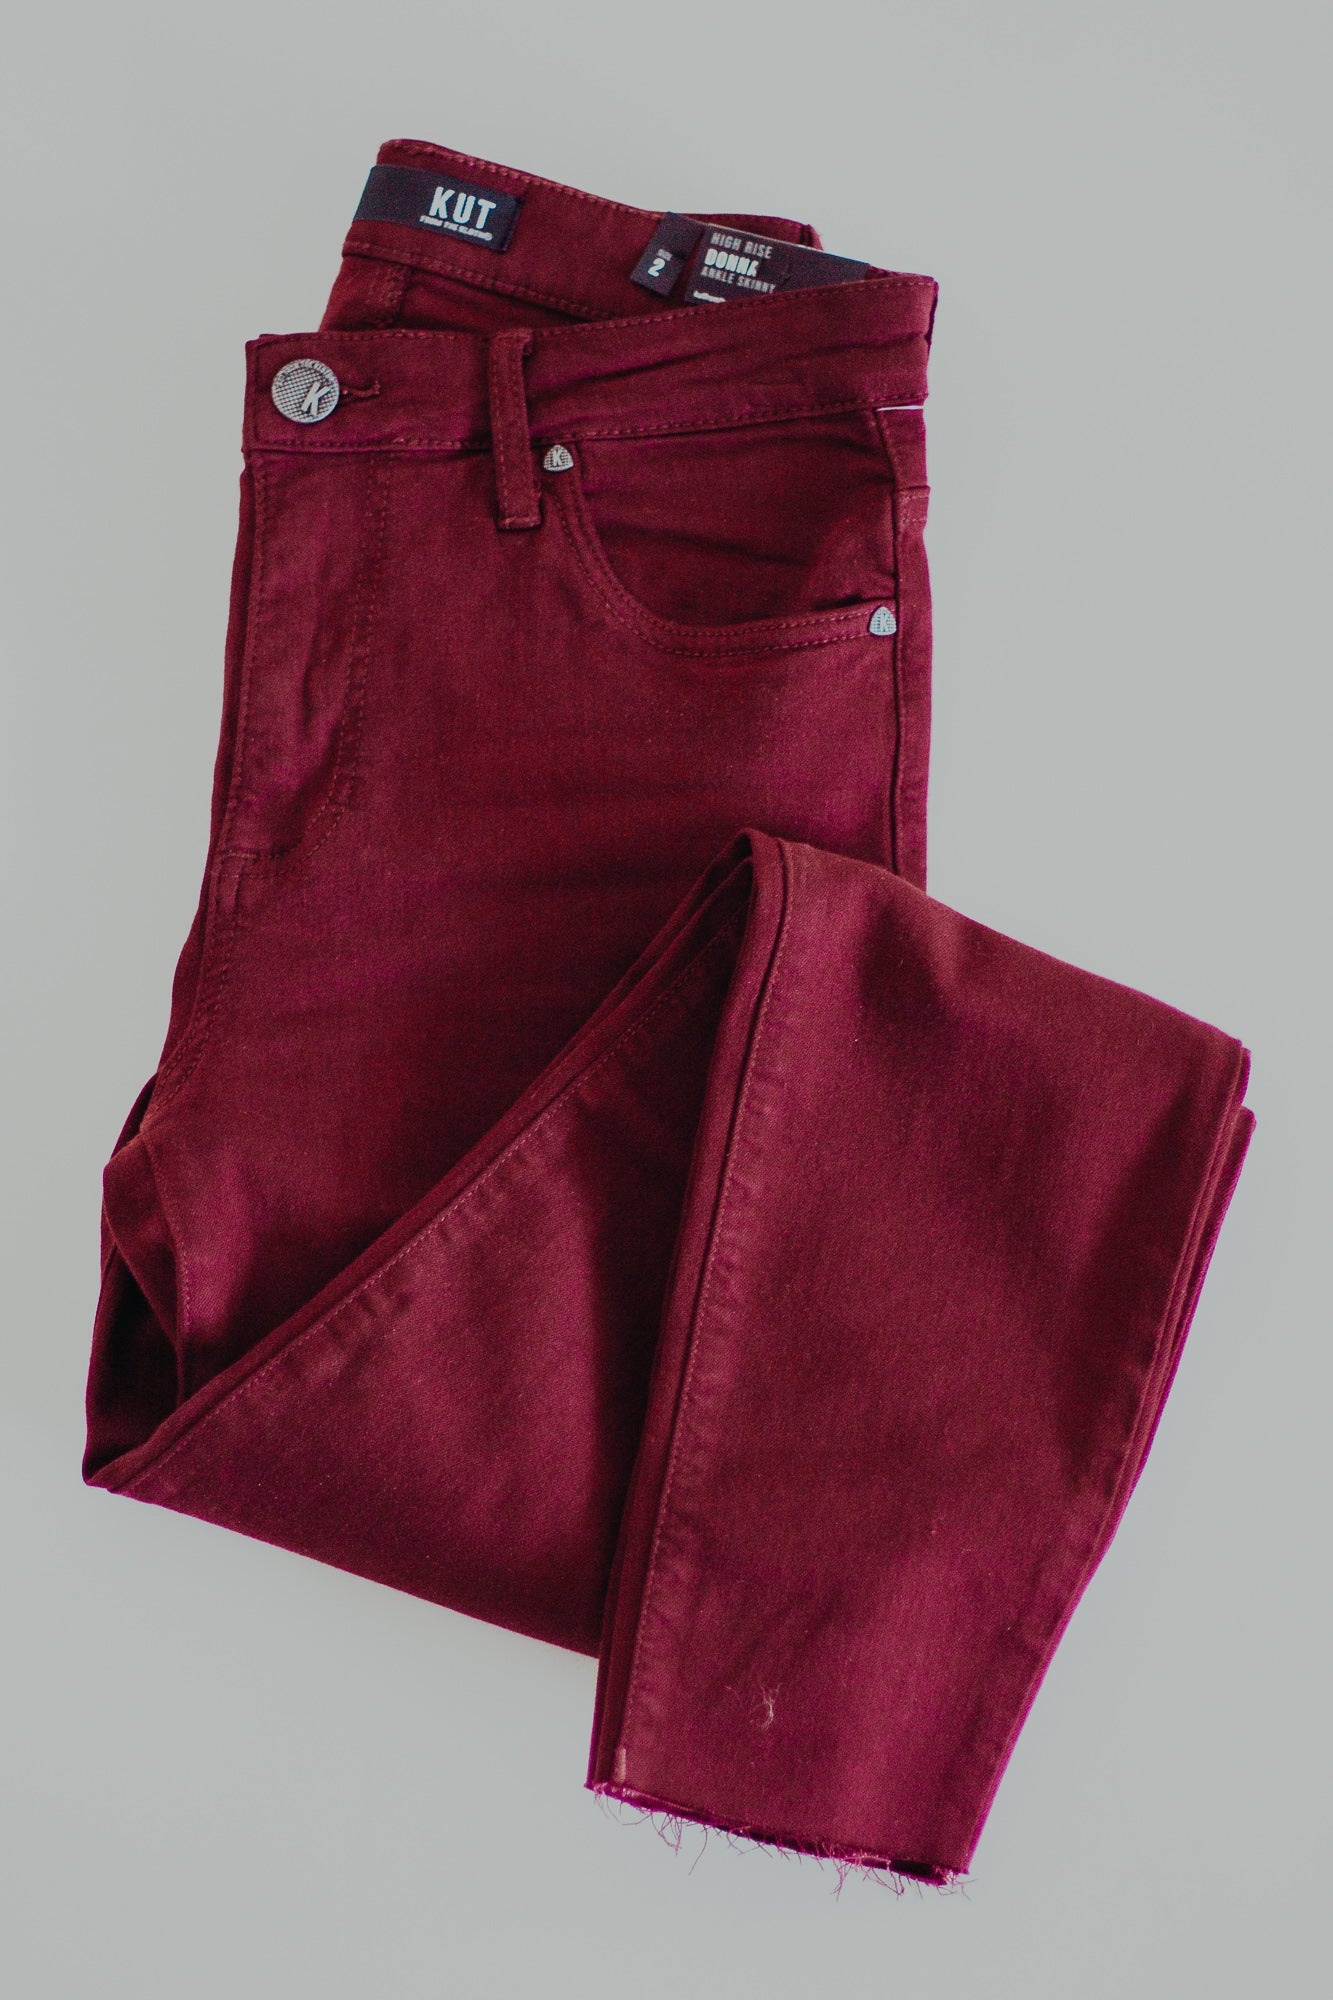 KUT Donna High Rise Ankle Skinny *Burgundy